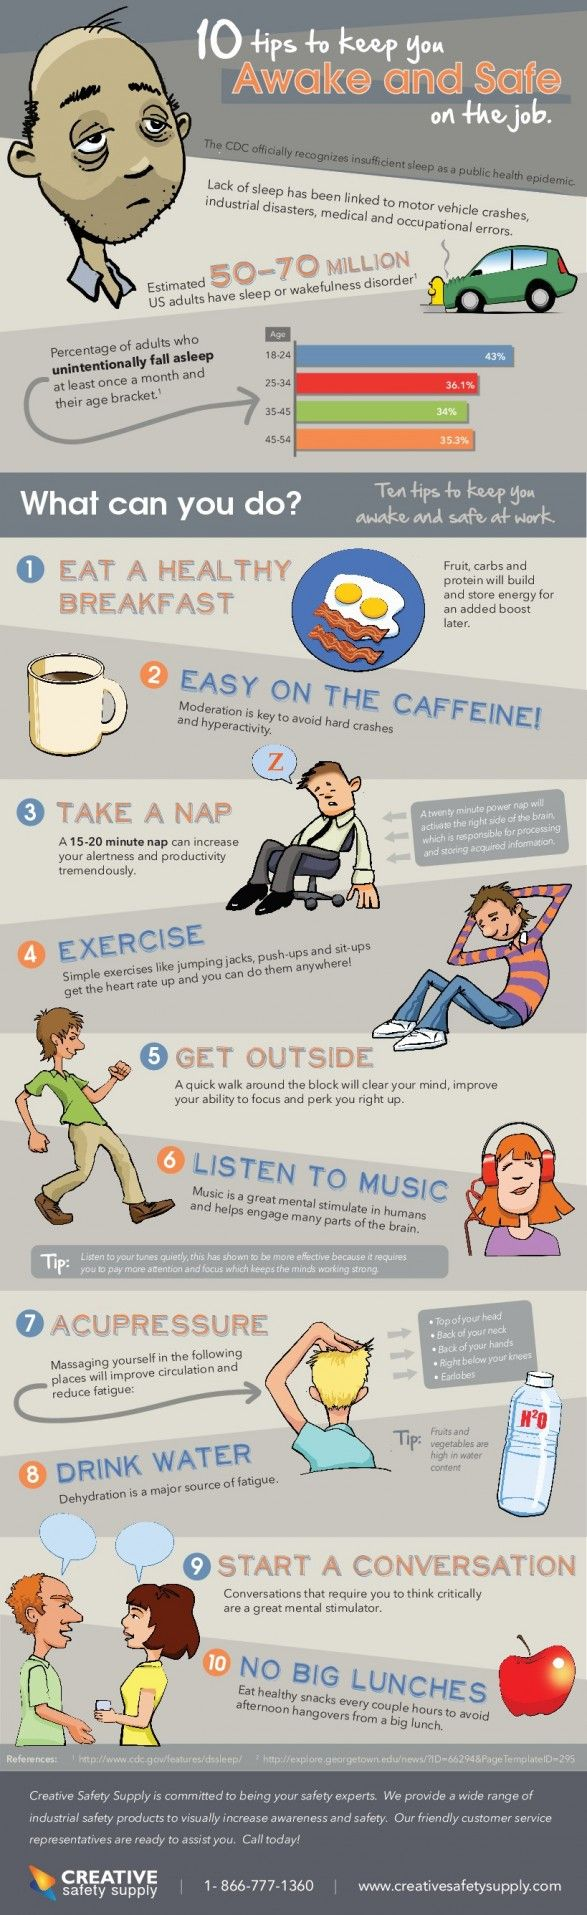 10 Tips to Keep You Awake and Safe on the Job How to